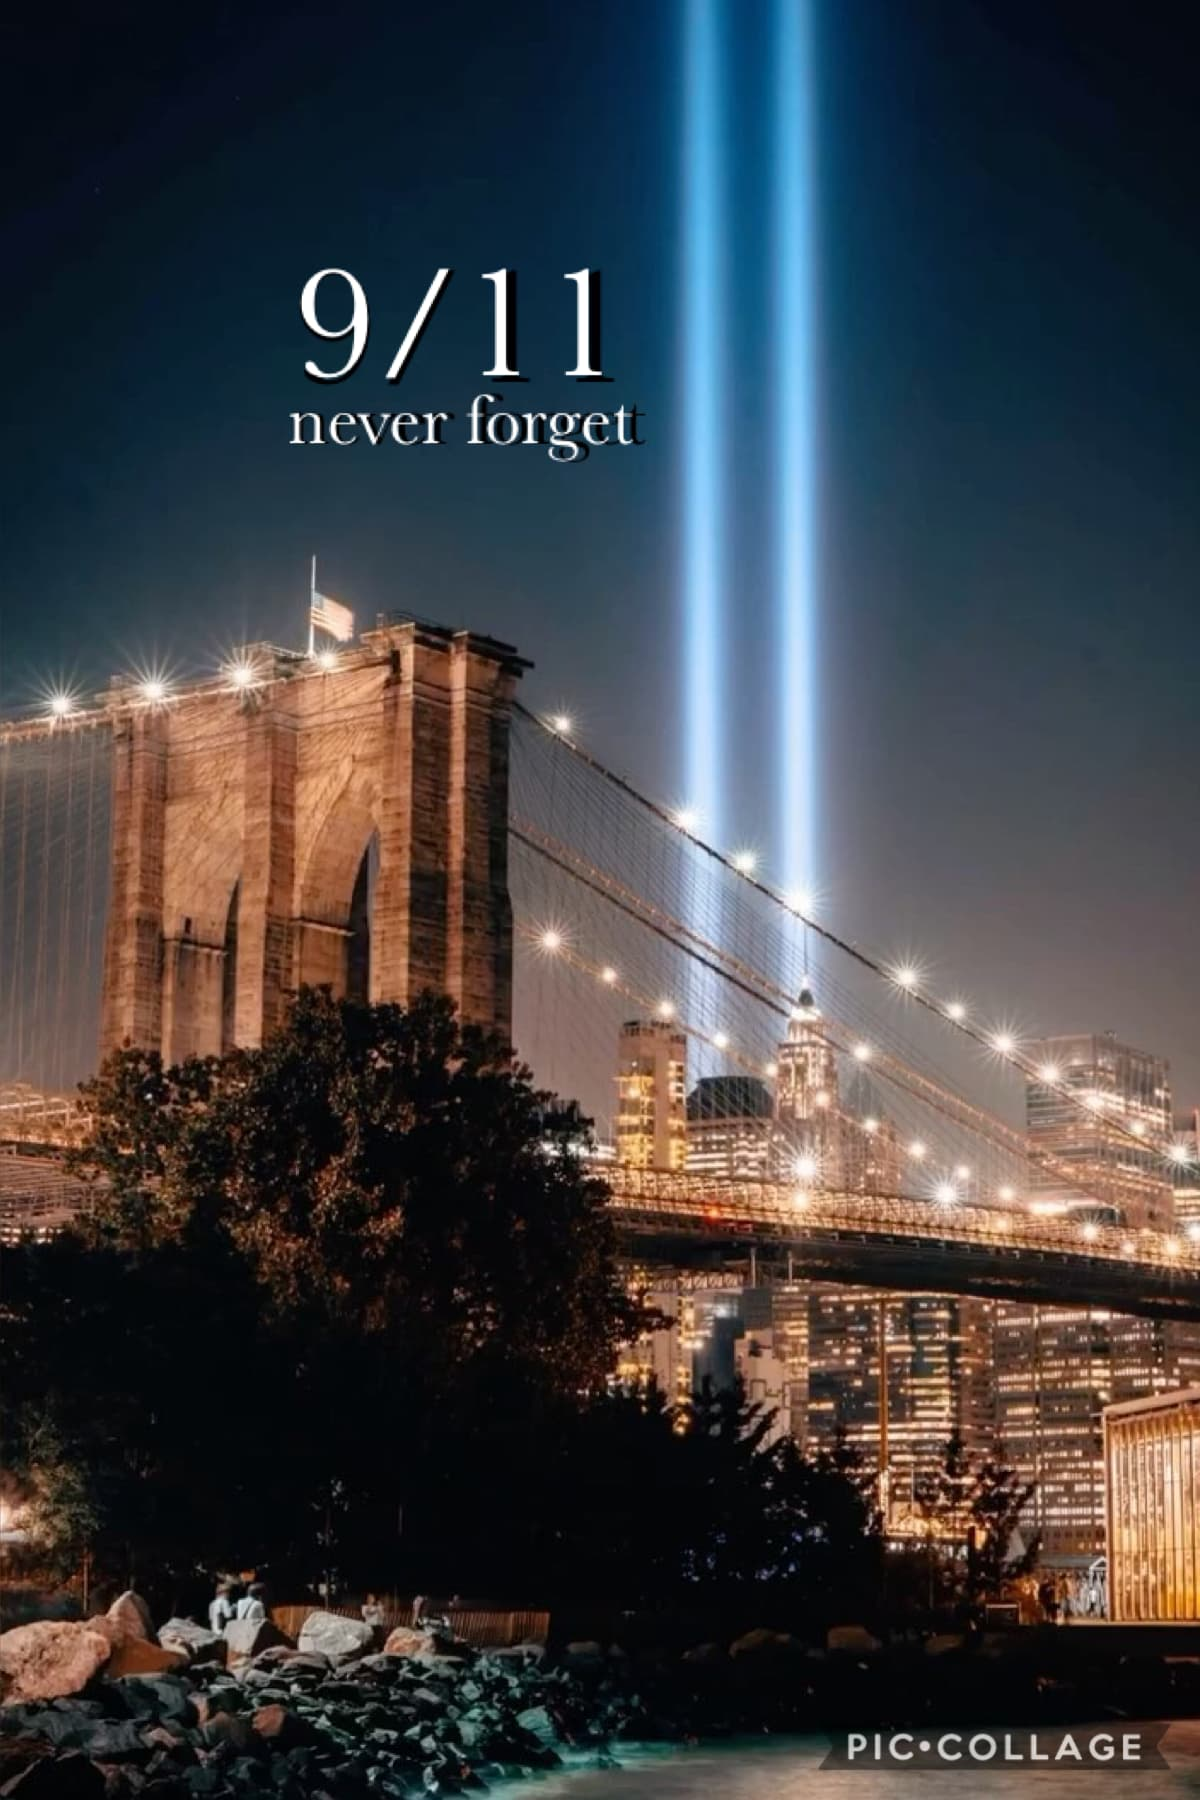 💔tap💔 Every year I always post a tribute to all the lives lost during the 9/11 attack on the twin towers. I was never personally affected by it, but it always impacts me. Qotd: did you know someone impacted by this?